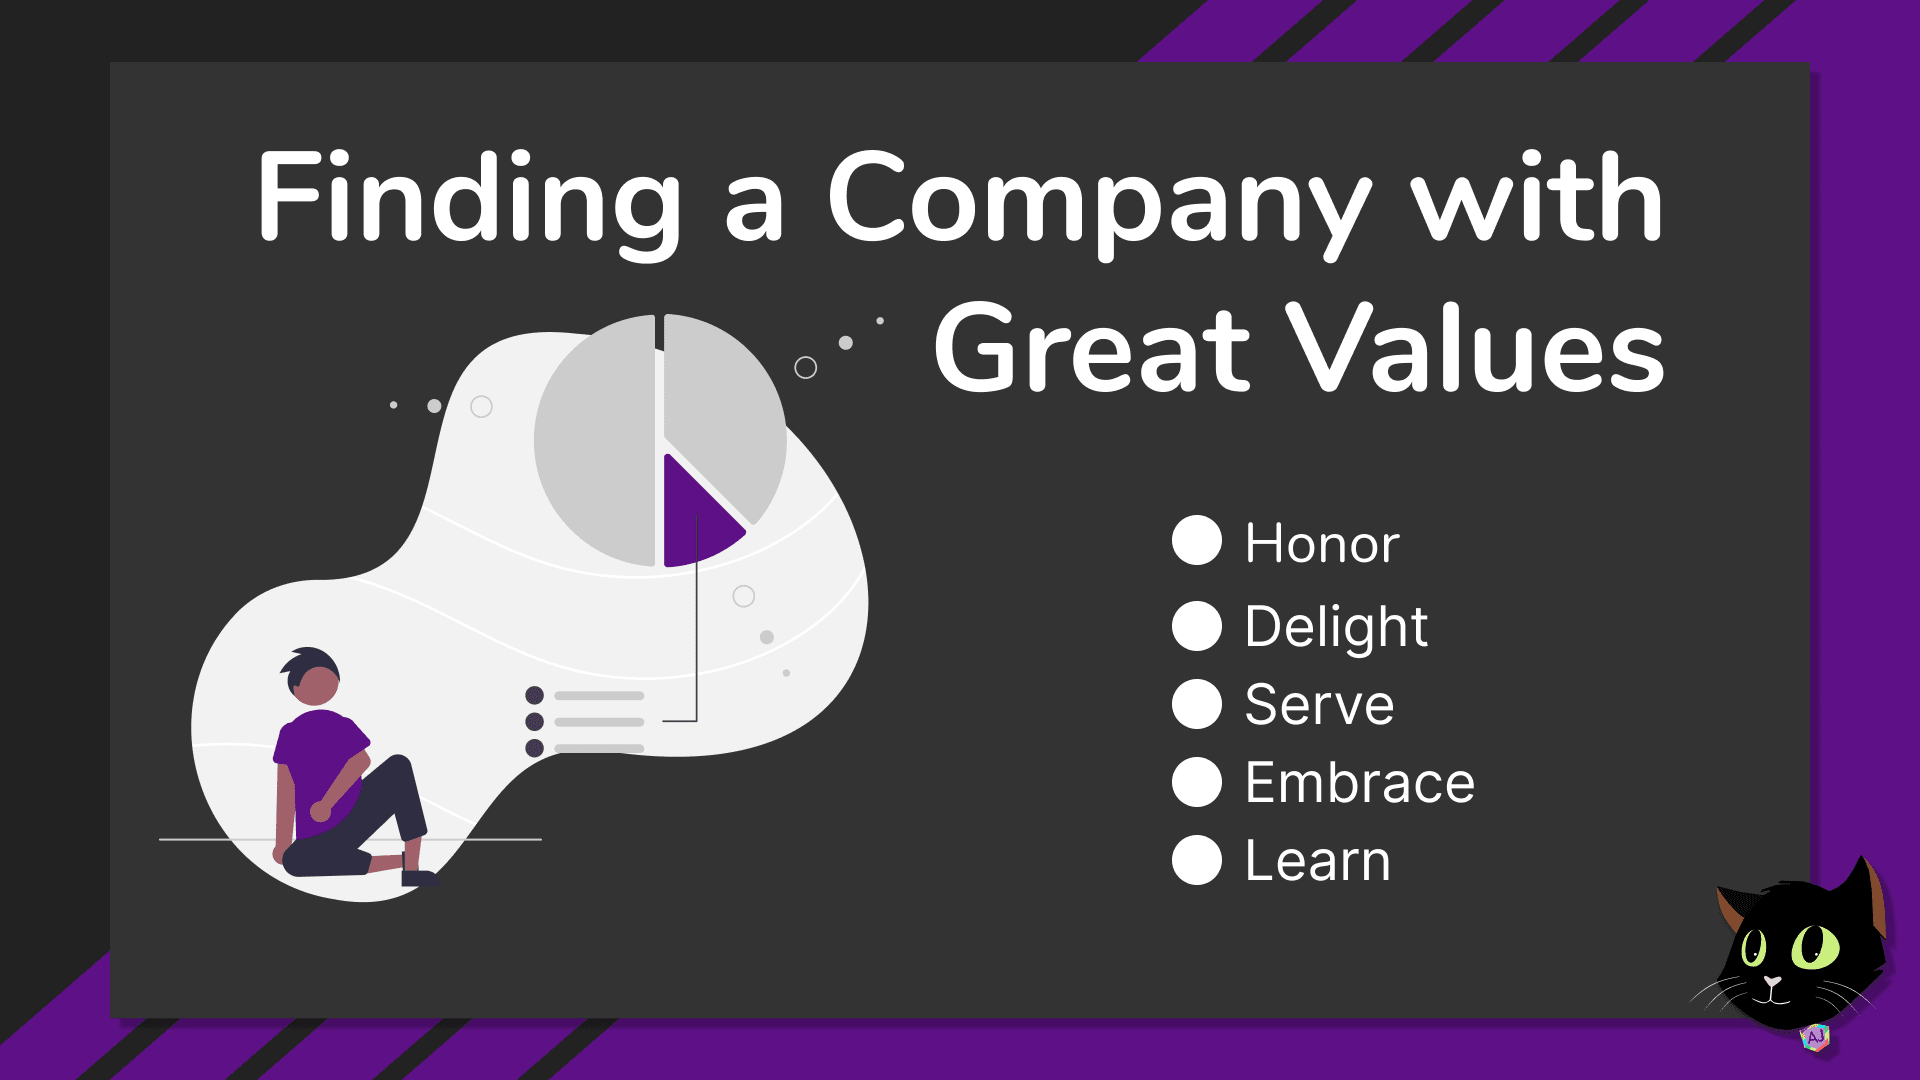 Finding a Company with Great Values